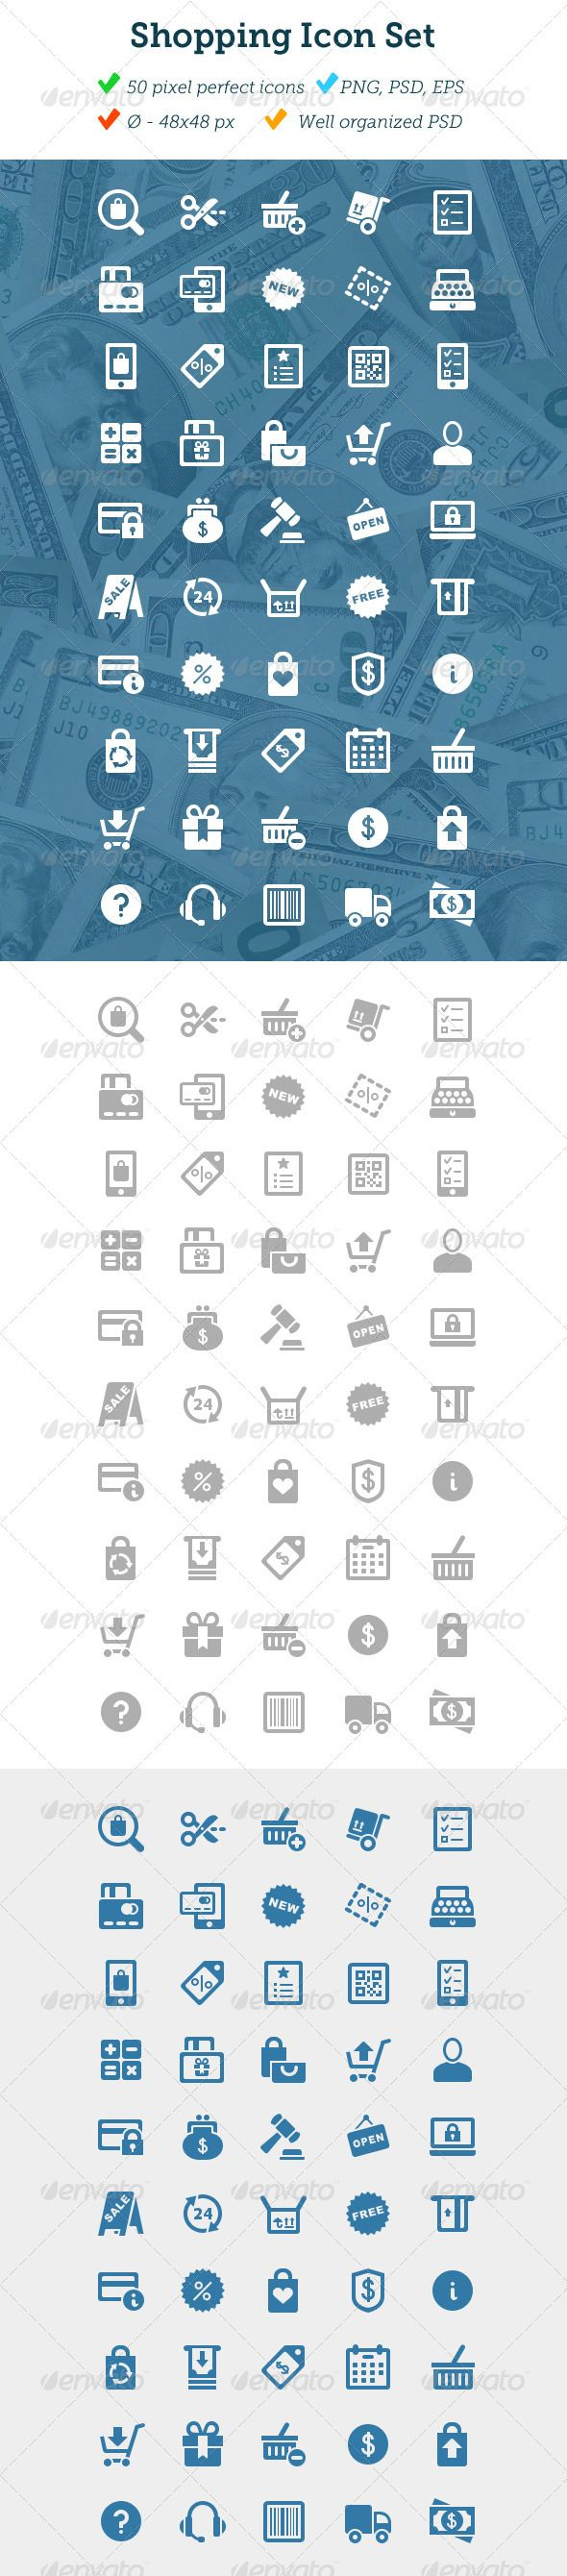 Shopping Icon Set  #GraphicRiver        50 Shopping Icons What do you get   Source .psd, EPS (10, CS3 , CS5), PNG   50 48px grey icons / PNG   50 64px whiteicons / PNG   50 64px blue / PNG   Easily change color.  Metaphors:   Add to cart  Auction  Barcode  Calculator  Calendar  Cart  Cash  Contact Us  Cash register  Coupon  Credit Cards  Cut a Coupon  Delivery  Discount  Dollar  Favorite Item  Free  Guide  Gift Card  Gift  Info  List  Mobile List  Mobile Payment  Mobile Purchase  New  Open…